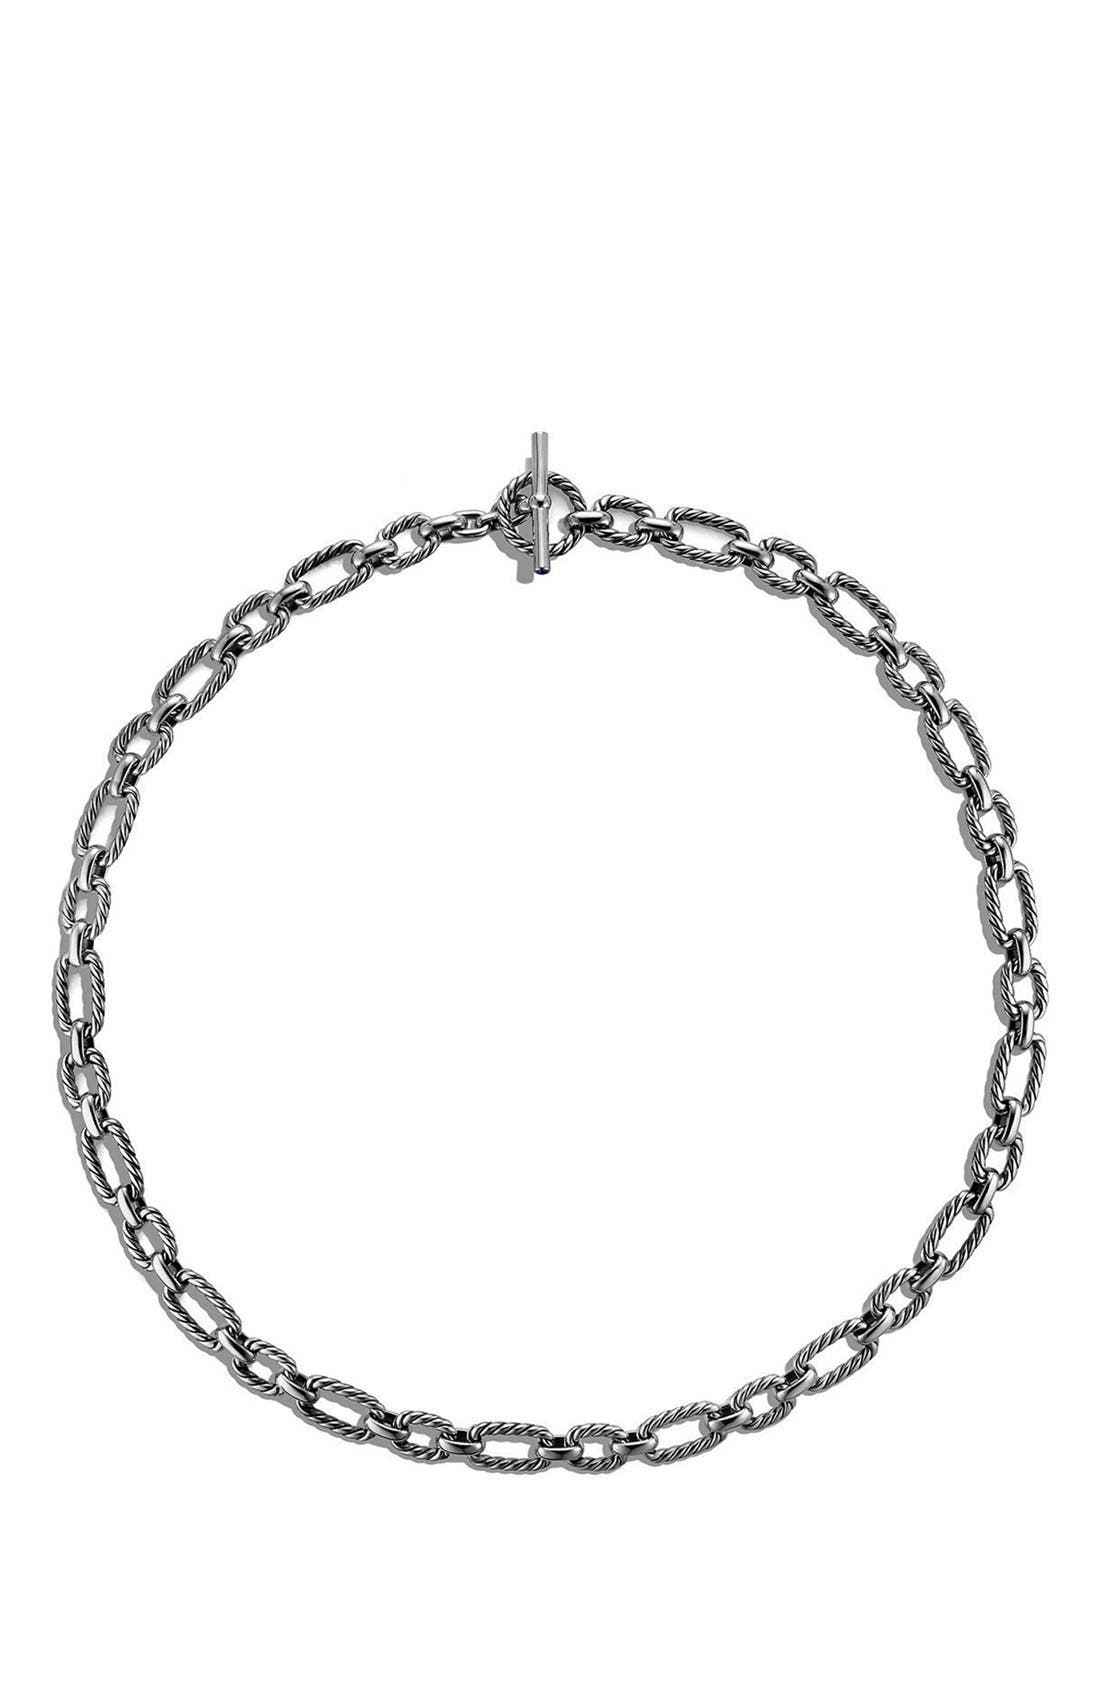 DAVID YURMAN Chain Cushion Link Necklace with Blue Sapphires